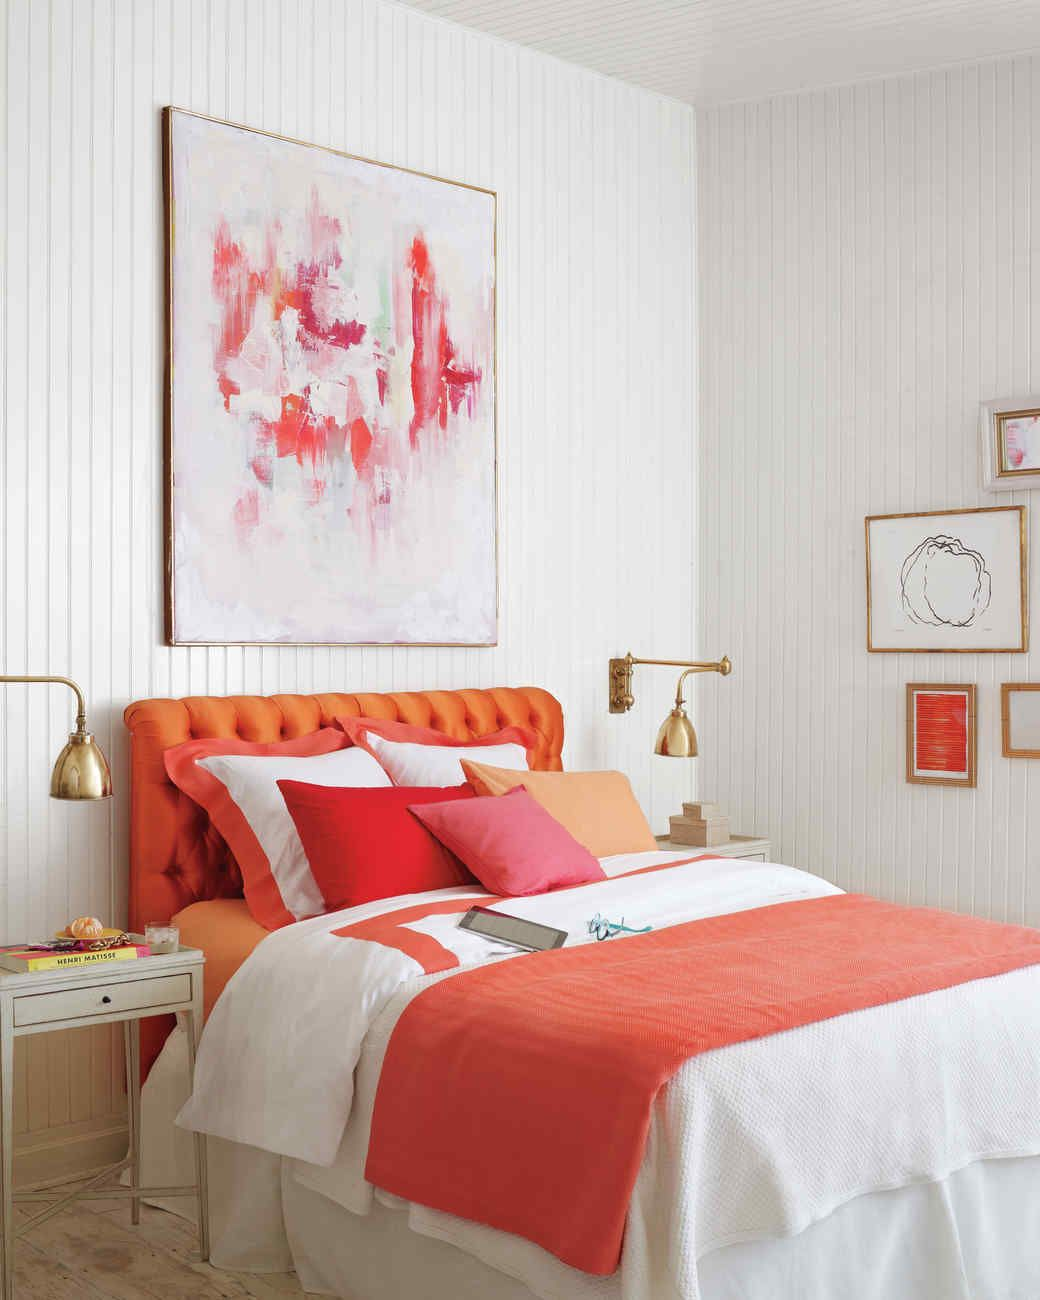 Master bedroom corner decor   Little Things You Can Do to Beautify Your Bedroom  Blank canvas